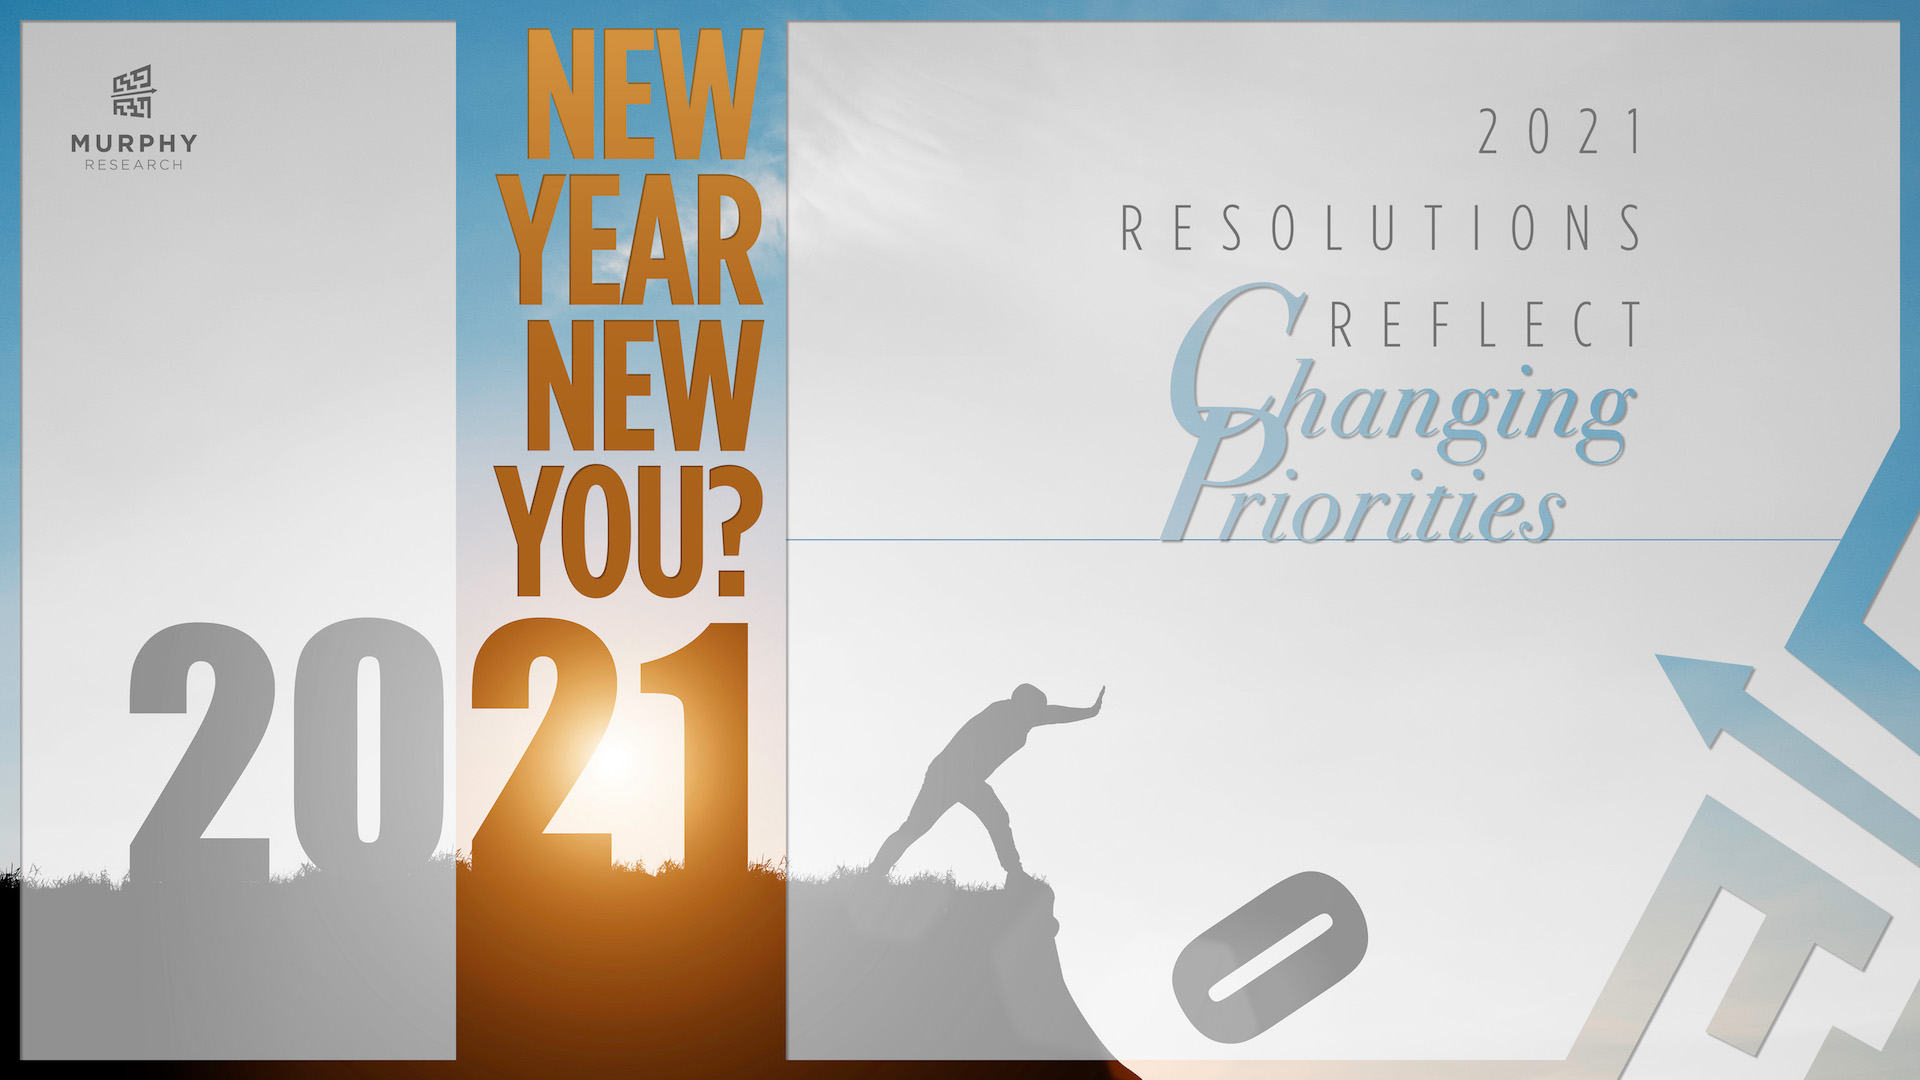 New Year, New You? 2021 Resolutions Reflect Changing Priorities